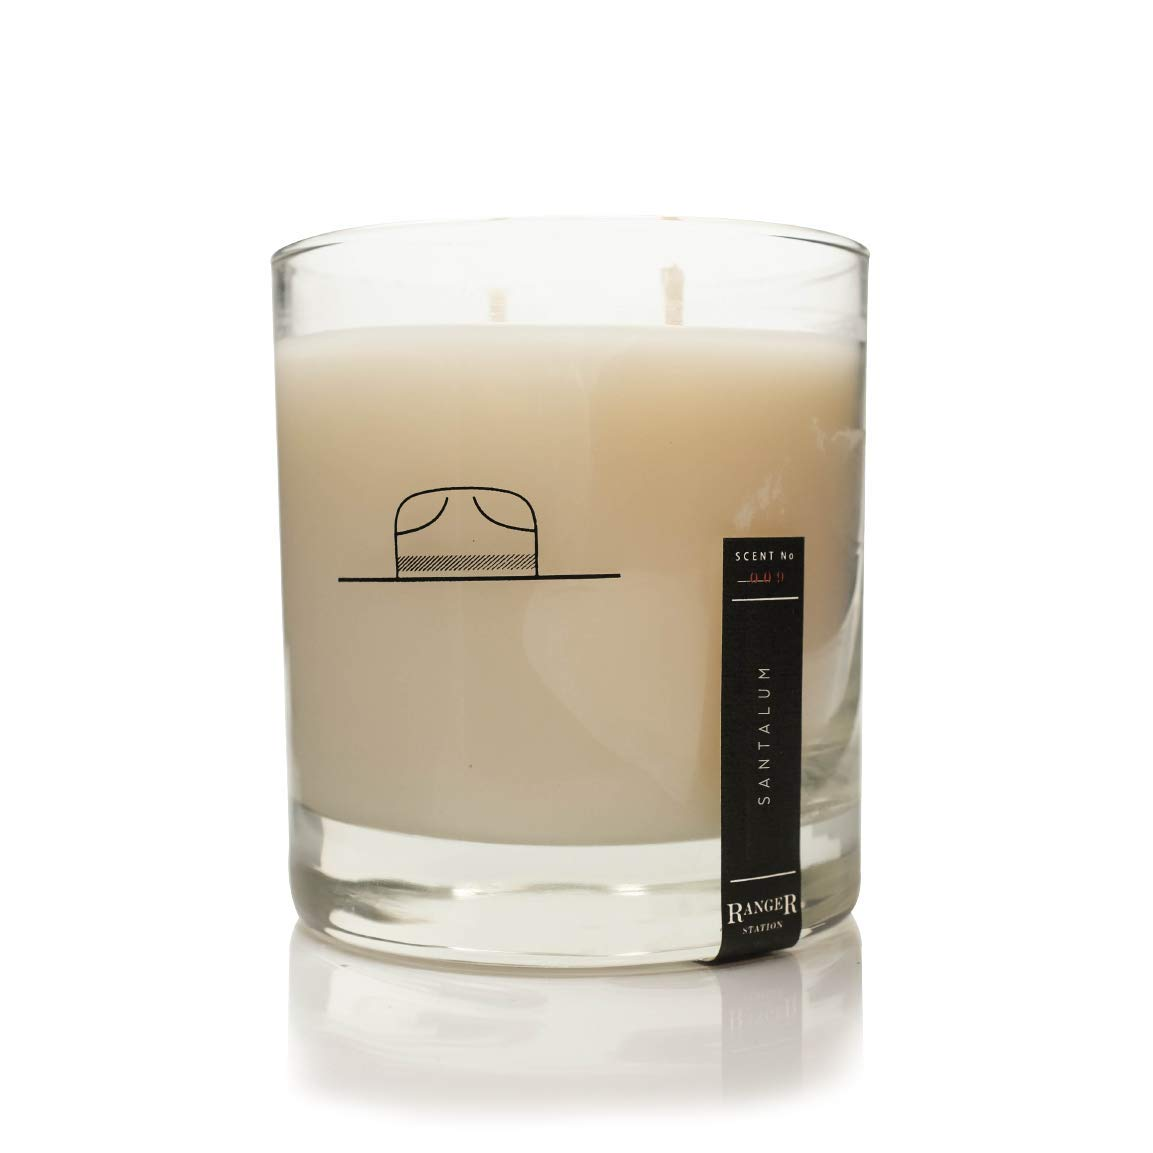 Ranger Station Santalum Candle by Ranger Station